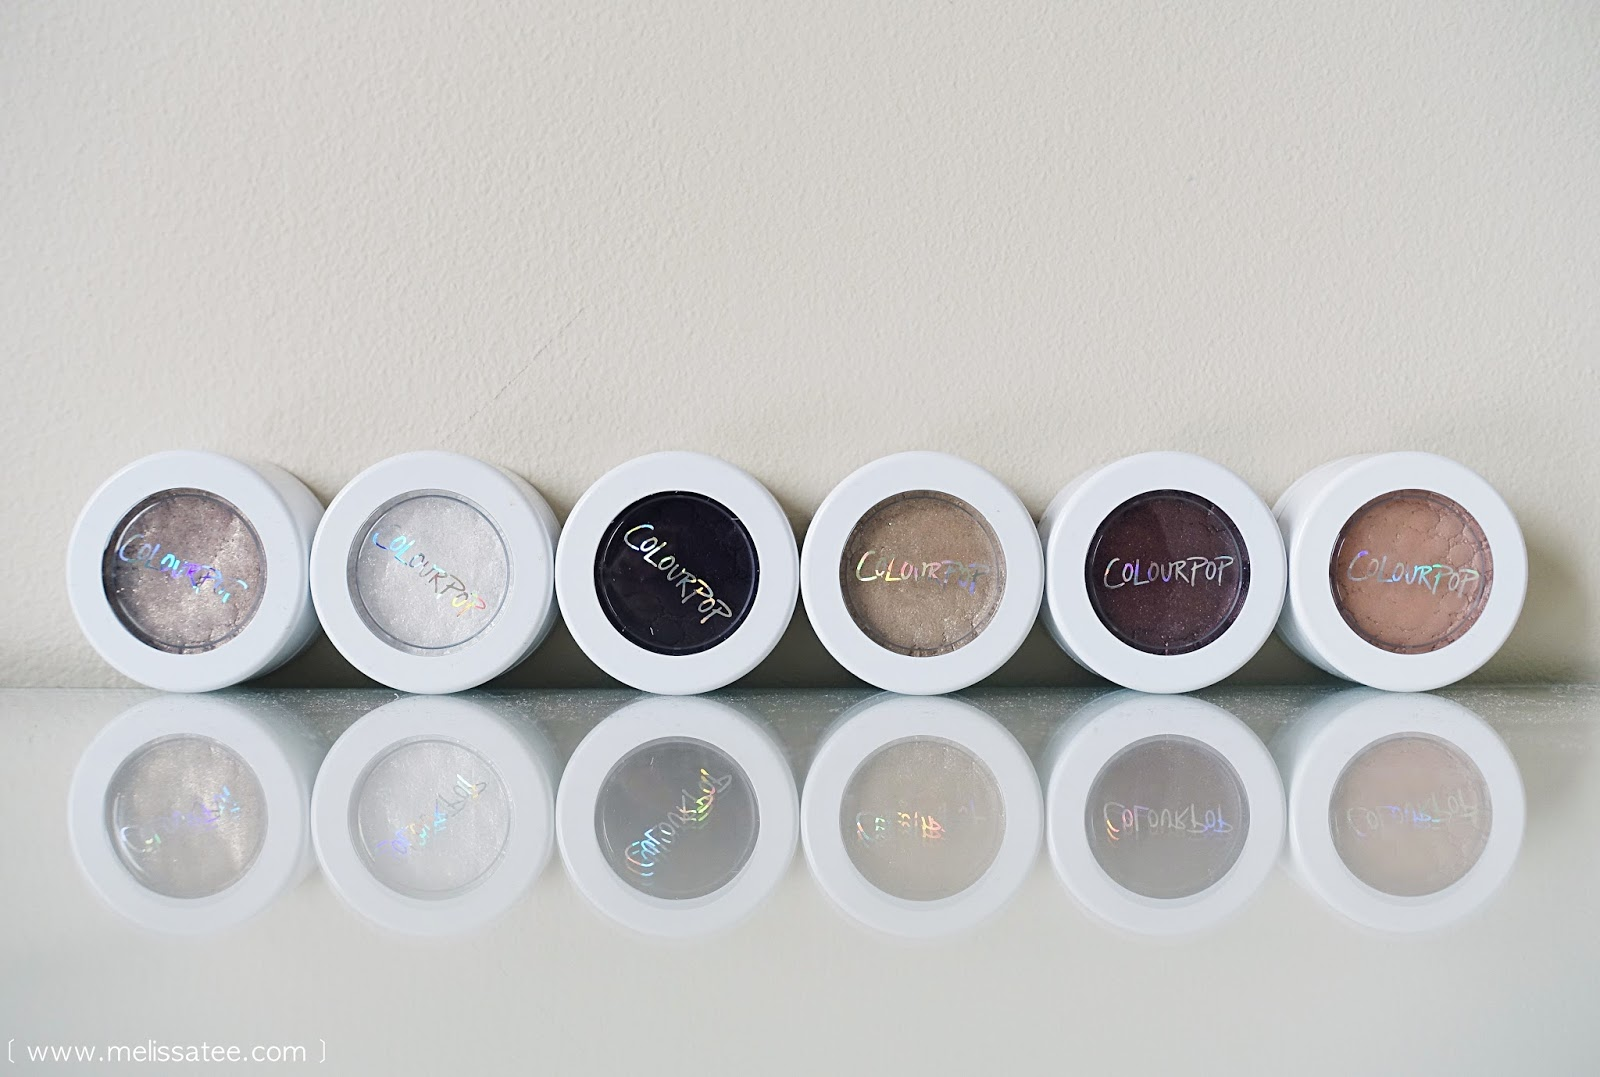 ColourPop Cosmetics, ColourPop, ColorPop, Colour Pop, Eyeshadows, Colourpop eyeshadow swatches